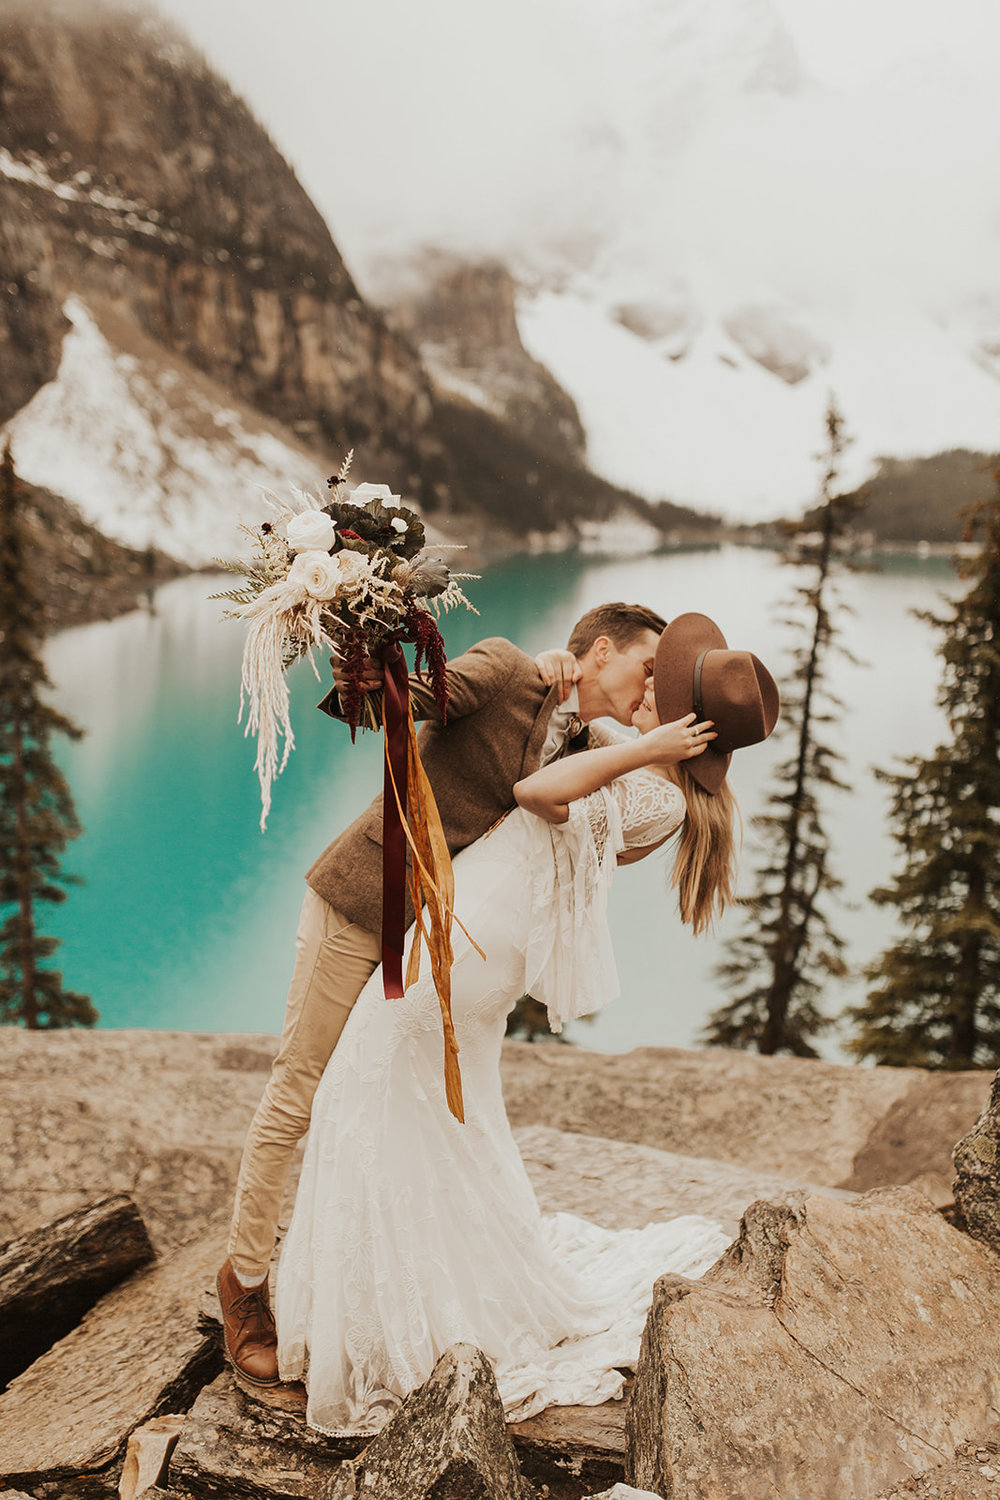 Banff Elopement l Lake Moraine Elopement l Vintage Bolo Tie l Pampas Grass Boho Boquet l Rue Design Wedding Dress l Banff Wedding Photographer l Destination Wedding Photographer l Katy Rose Photo_-129.jpg